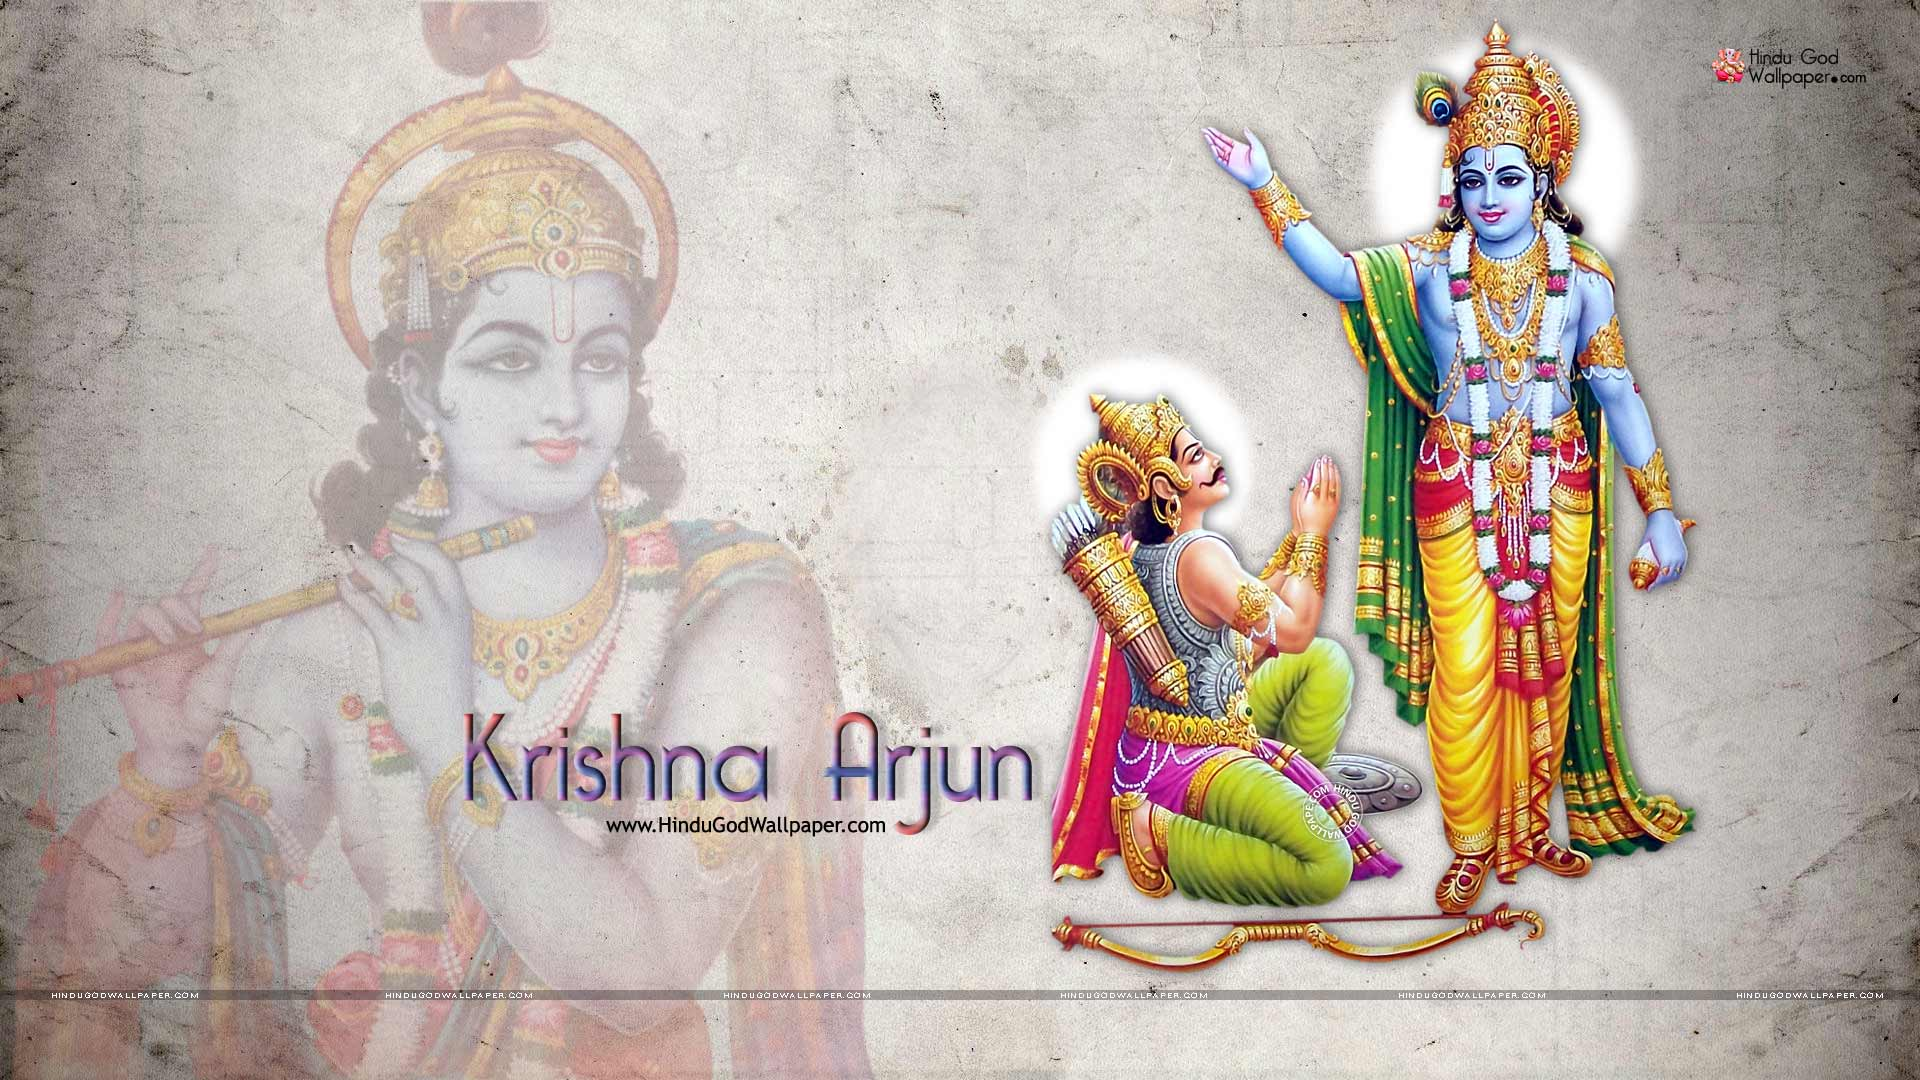 3456 krishna arjun wallpaper hd